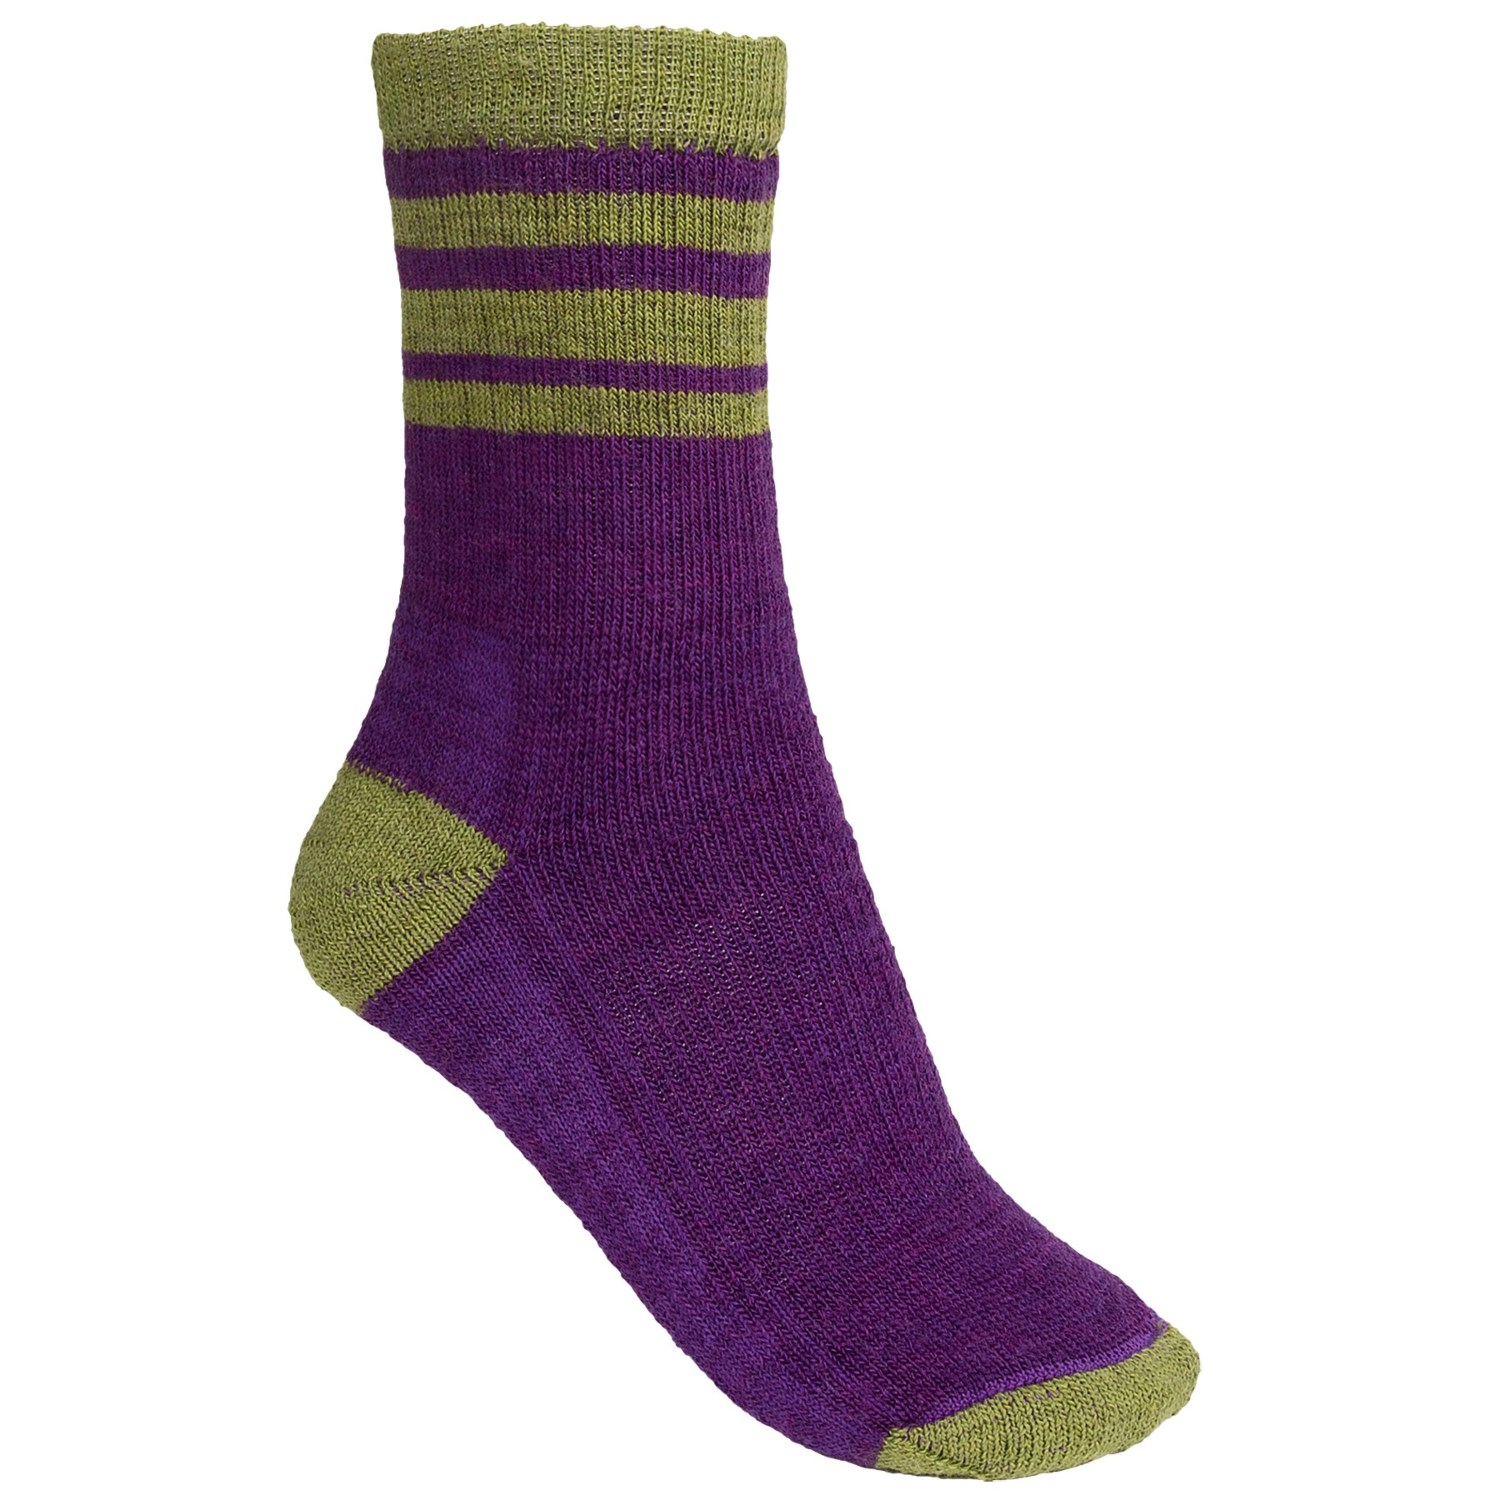 Find great deals on eBay for Womens Wool Socks in Women's Socks. Shop with confidence.